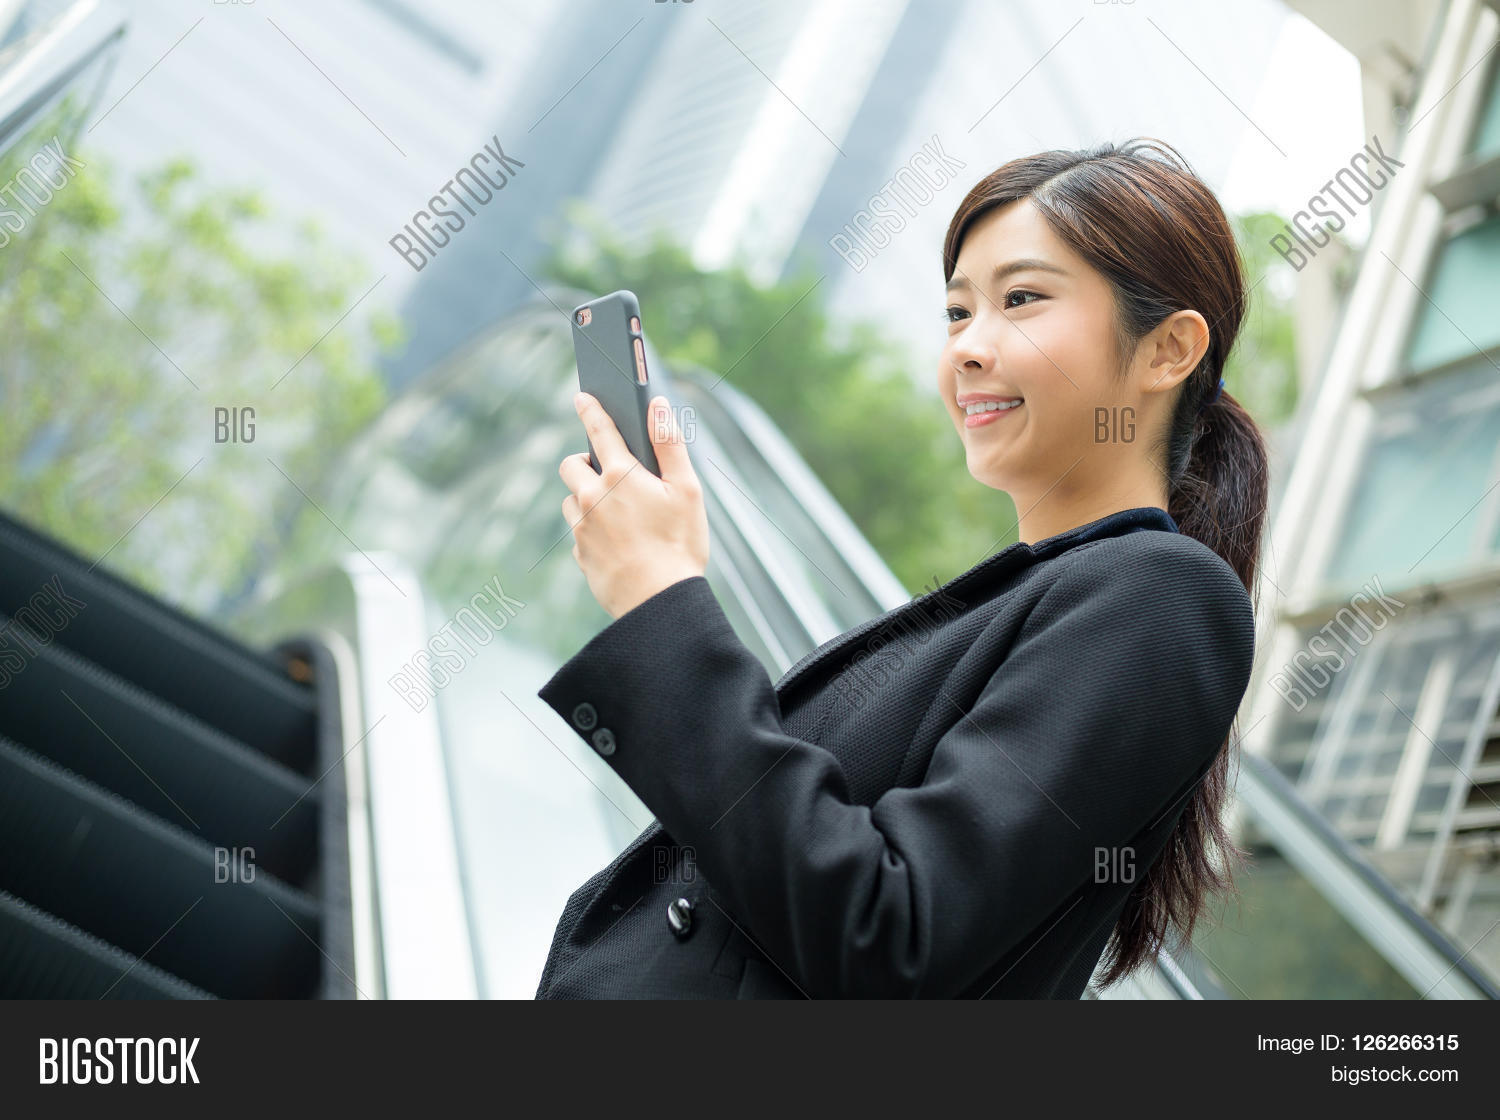 Business woman read on cellphone and standing on escalator